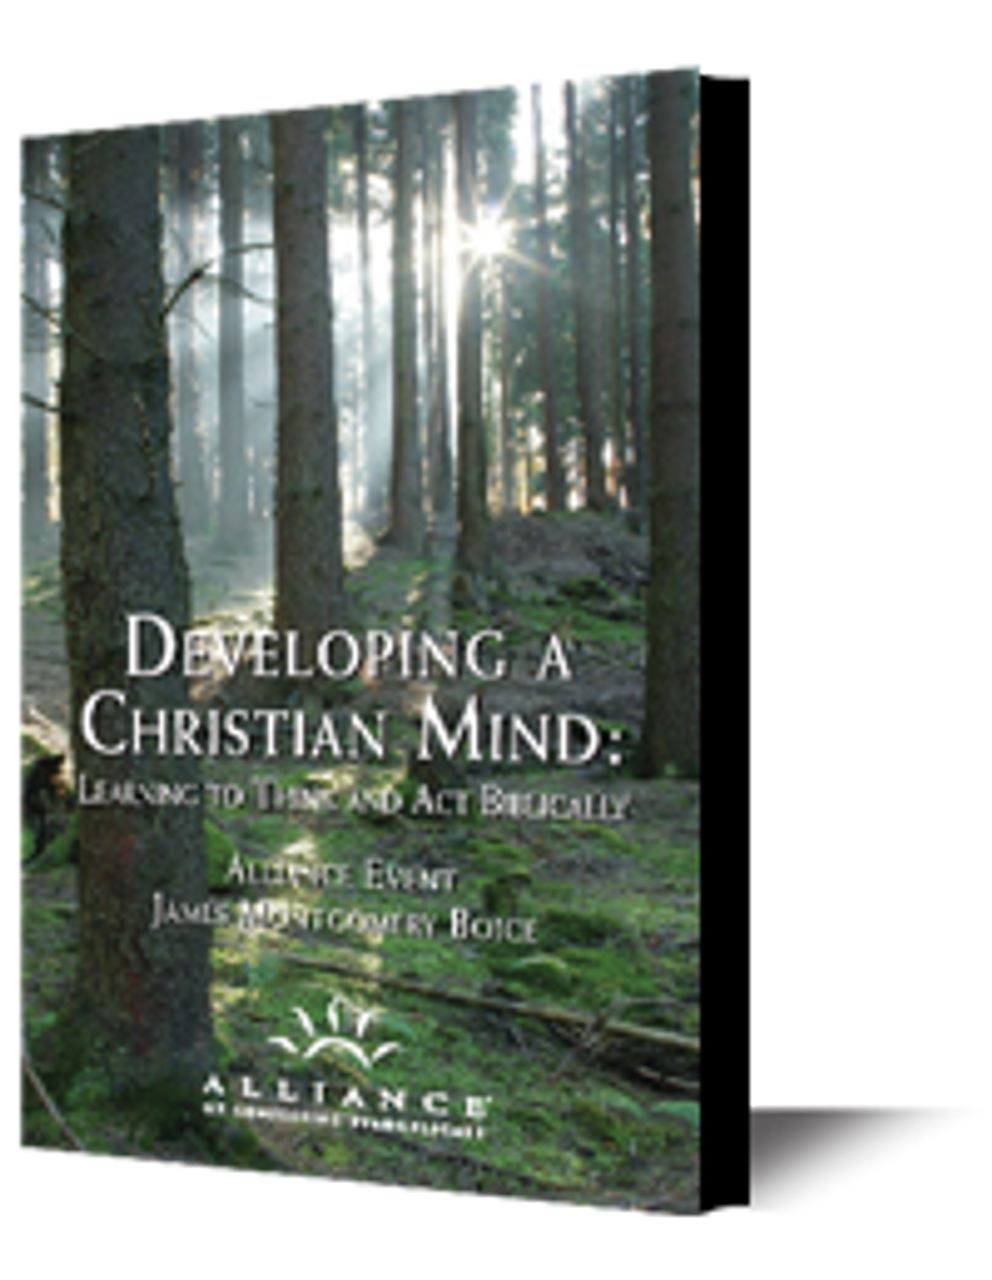 Develping a Christian Mind, Part 1 (mp3 download)